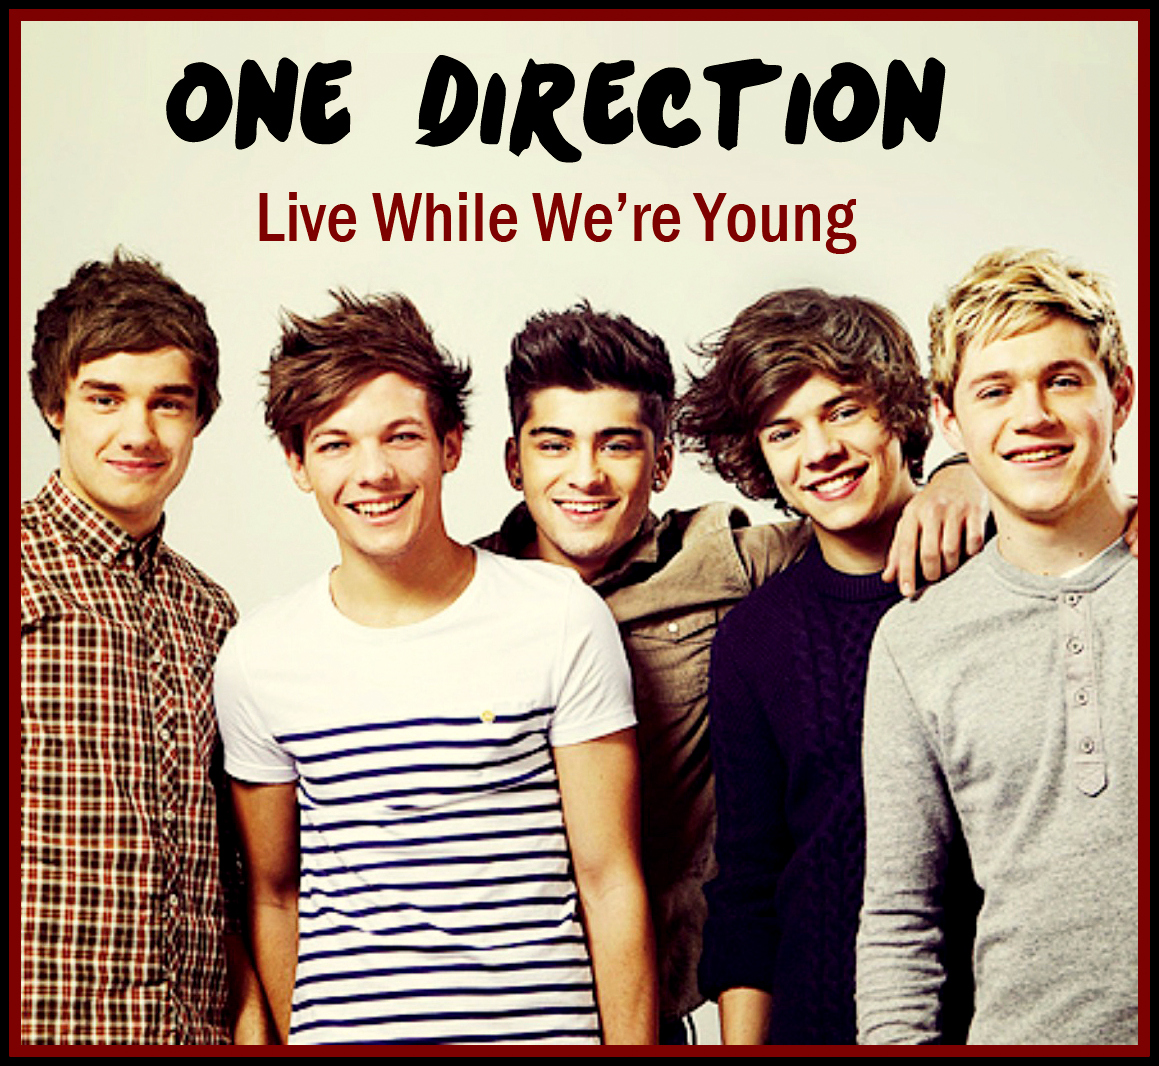 World of Music: ONE DIRECTION - LIVE WHILE WE'RE YOUNG LYRICS